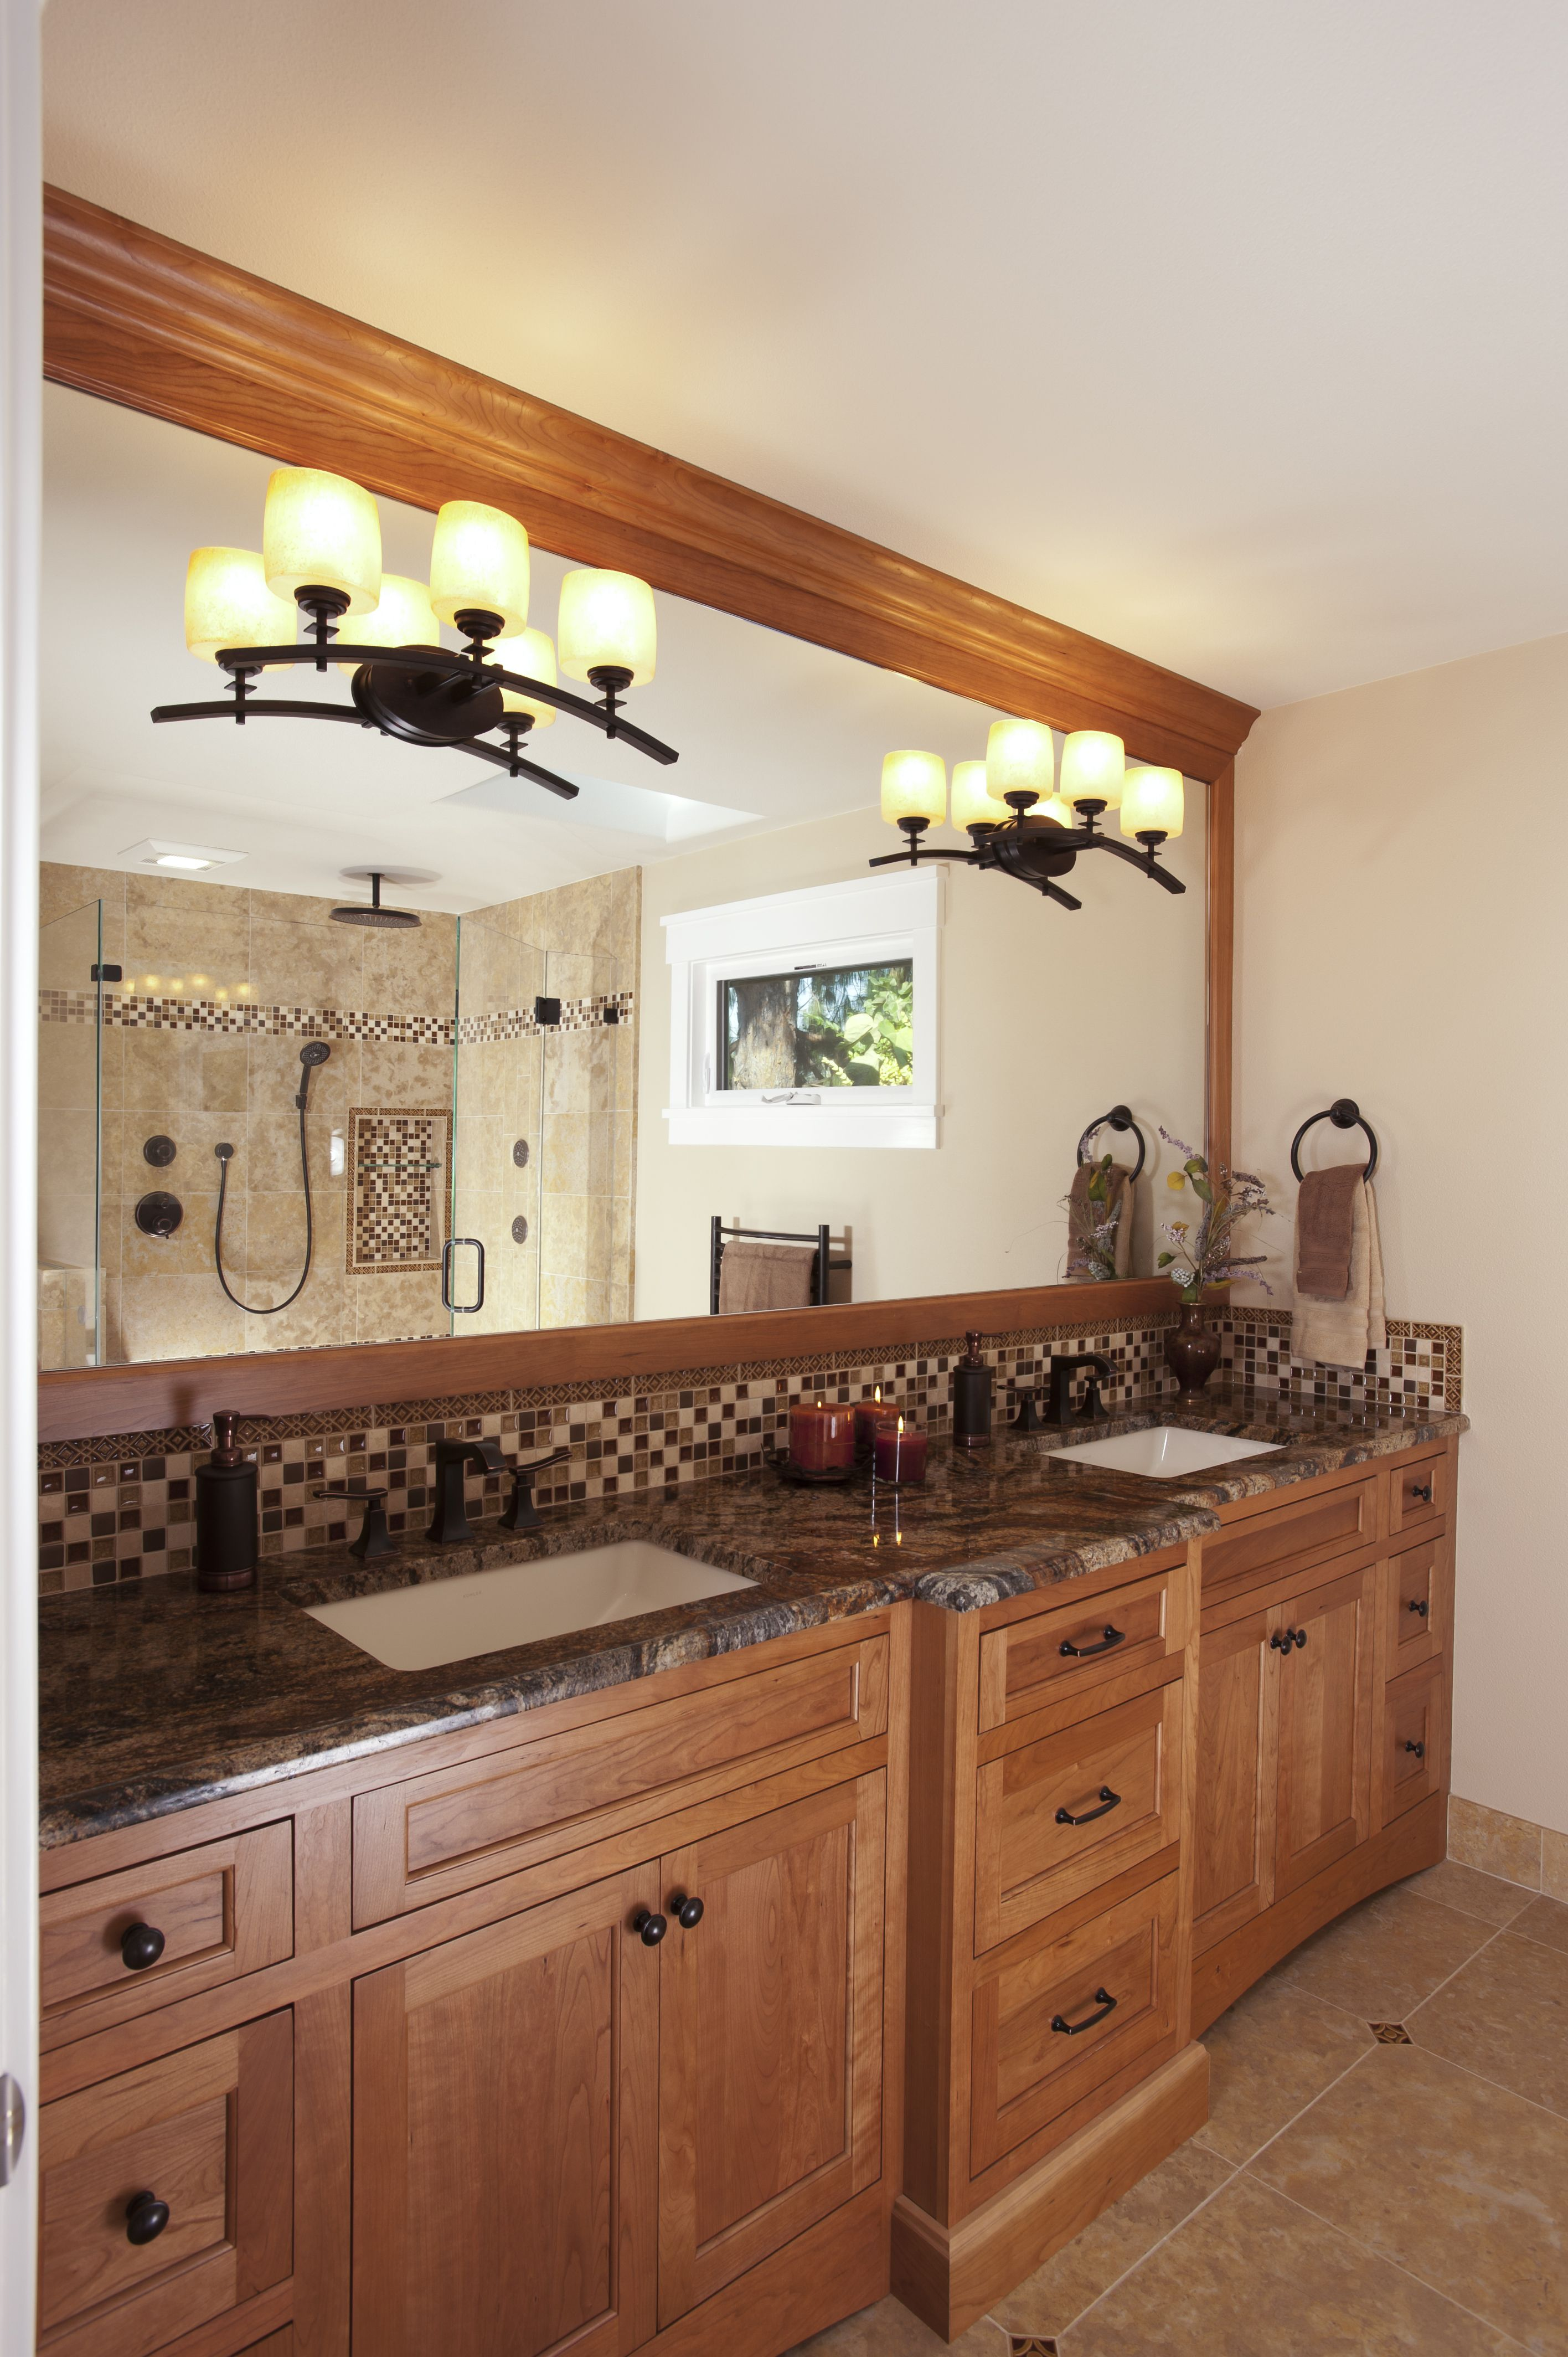 Cabinets Dynasty by Omega Uliano Door in Cherry wood and